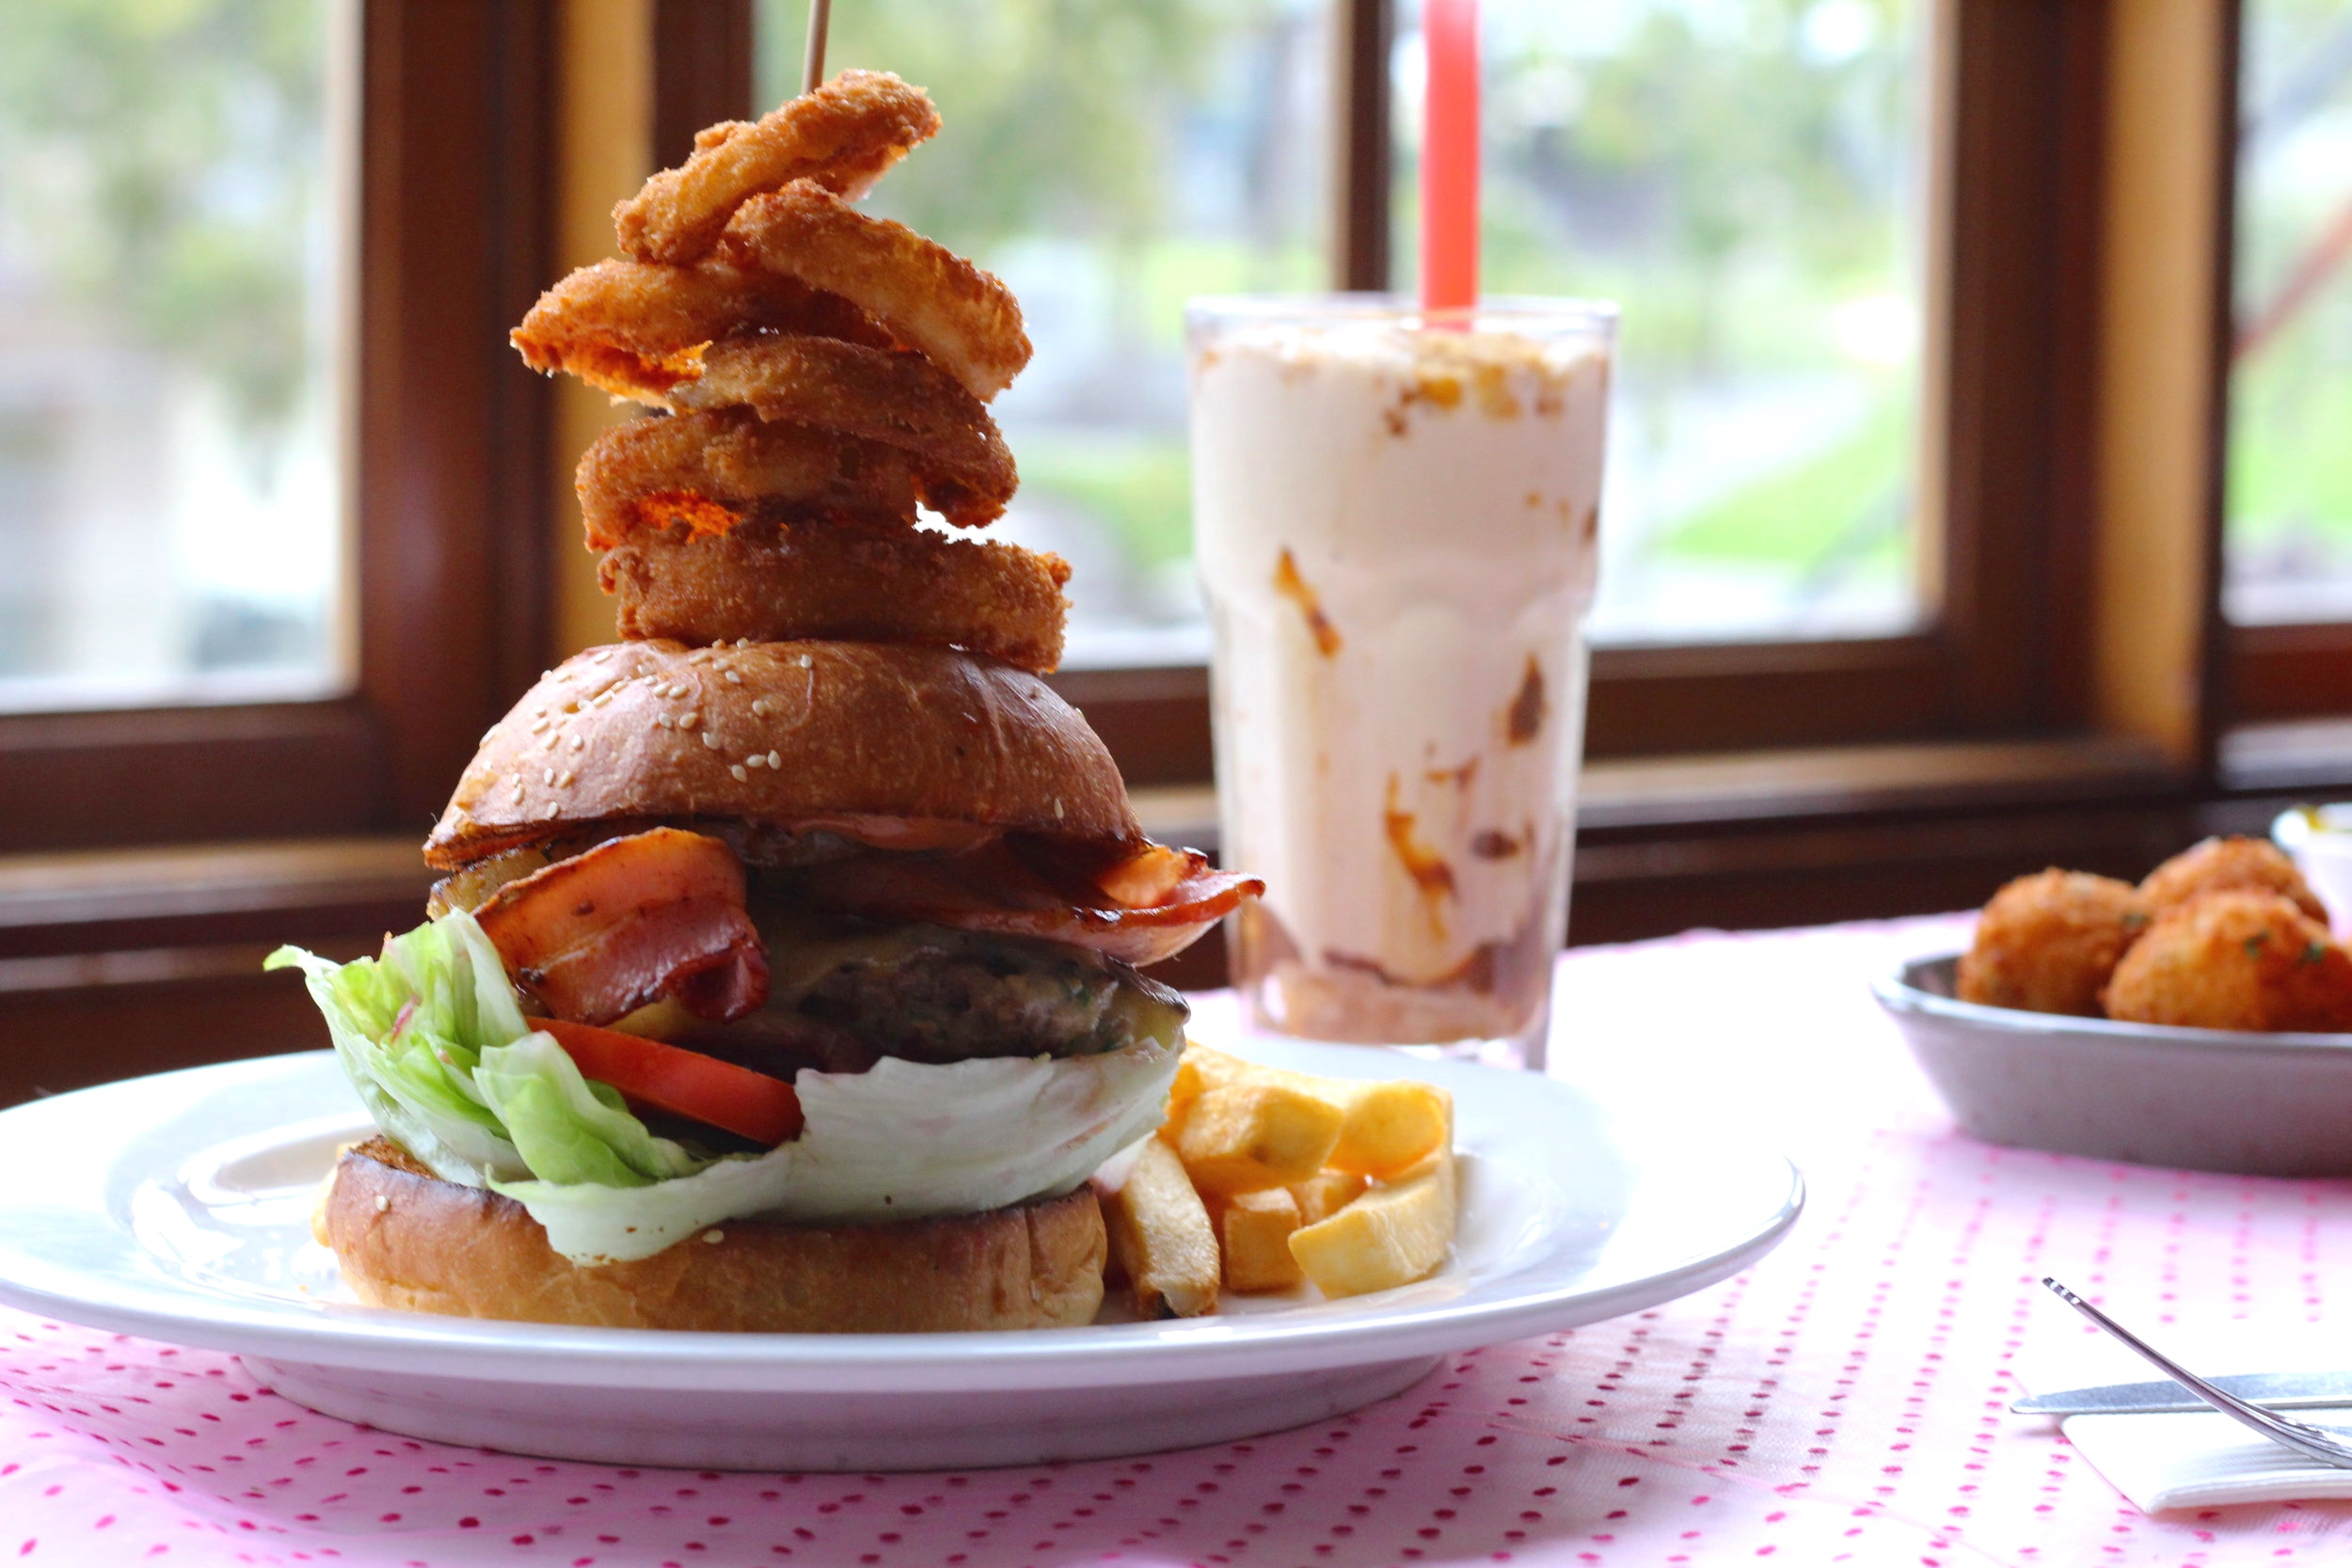 Burgers & Shakes - 28ppa choice ofCheese burger, Vegetarian burgerSouthern fried chicken burger or Pulled pork burgerto shareOnion rings, chips, mac 'n' cheese balls, chicken wings & salad+one of our famous thickshakes